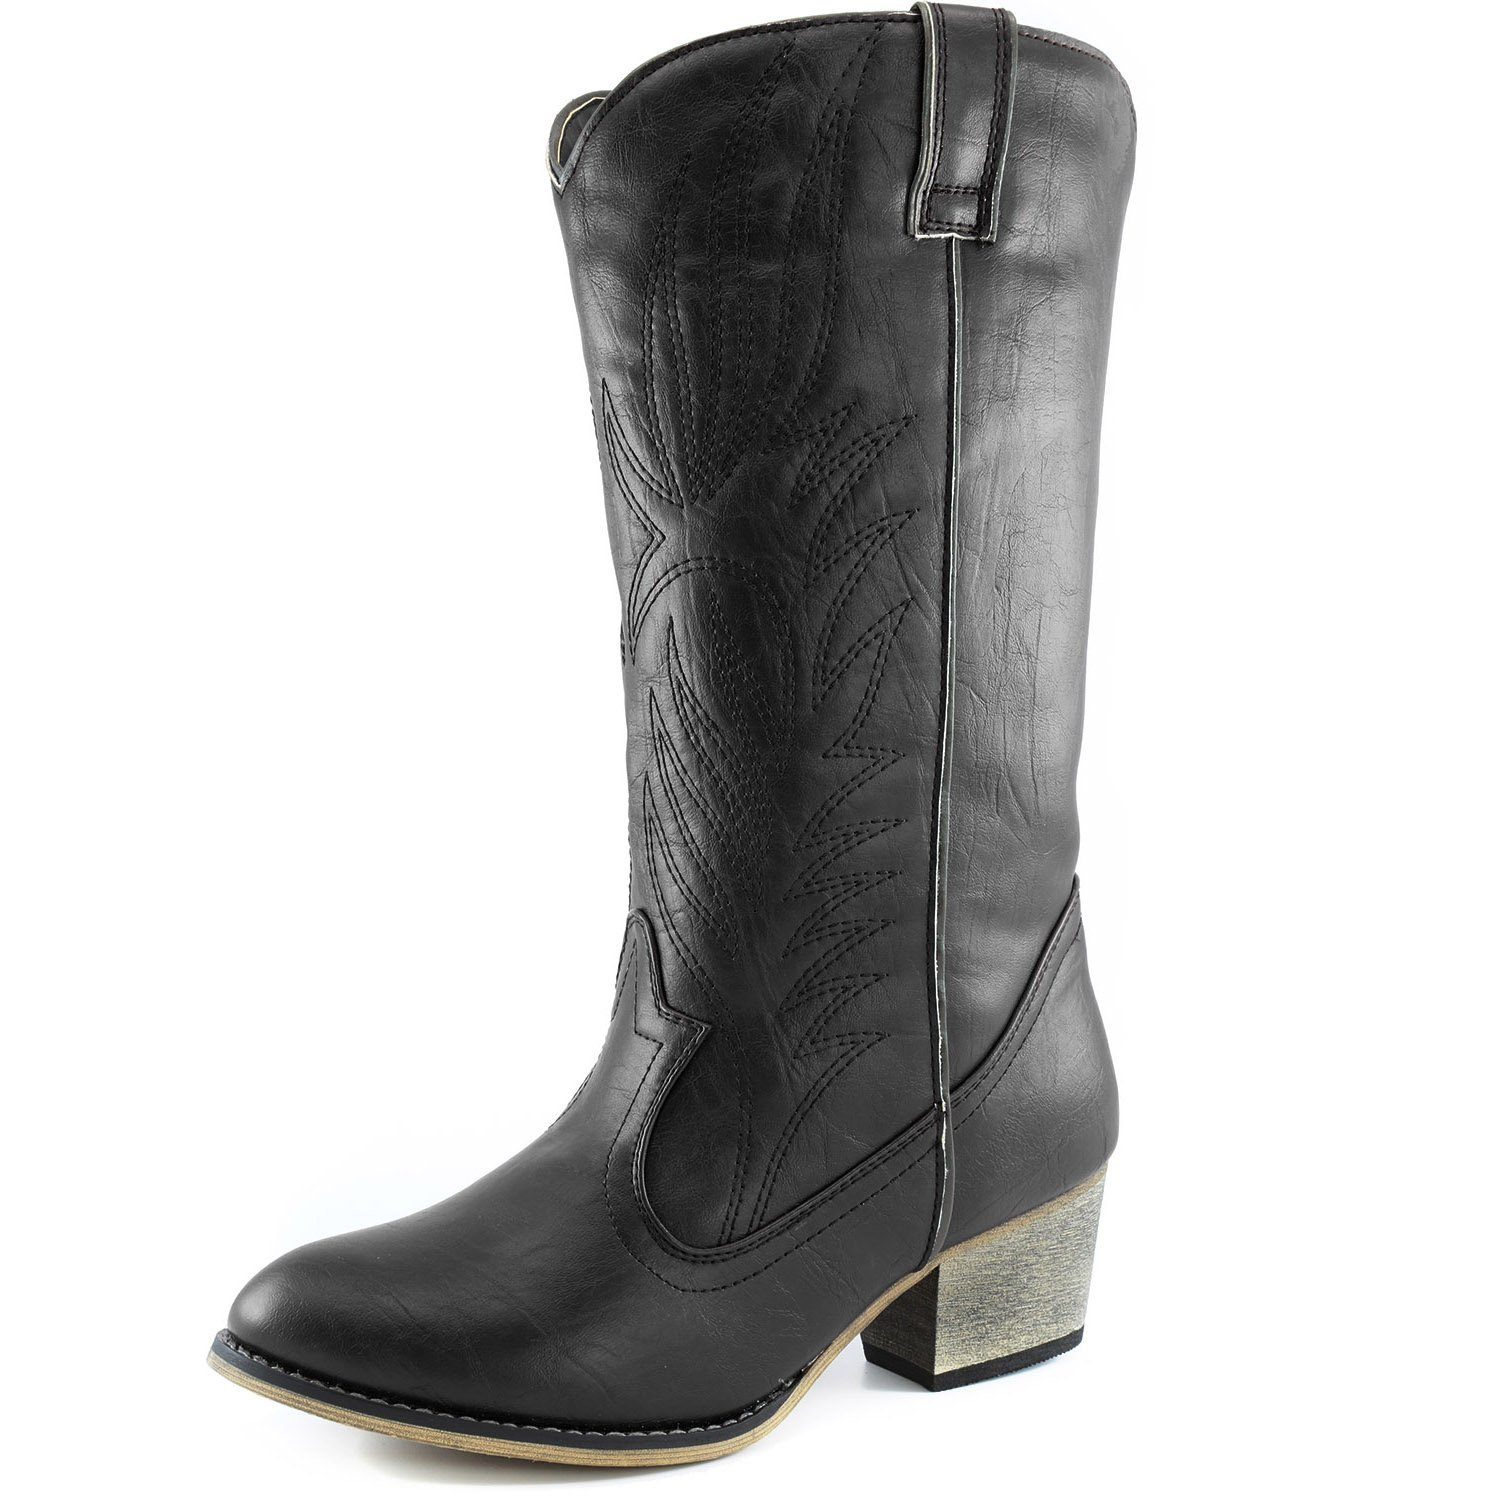 f754450cf42 A TRUE WESTERN CLASSIC GO WEST FASHIONISTA!--The DailyShoes Classic Women s  Cowboy Boots are inspired by traditional cowboy boot designs giving them a  look ...